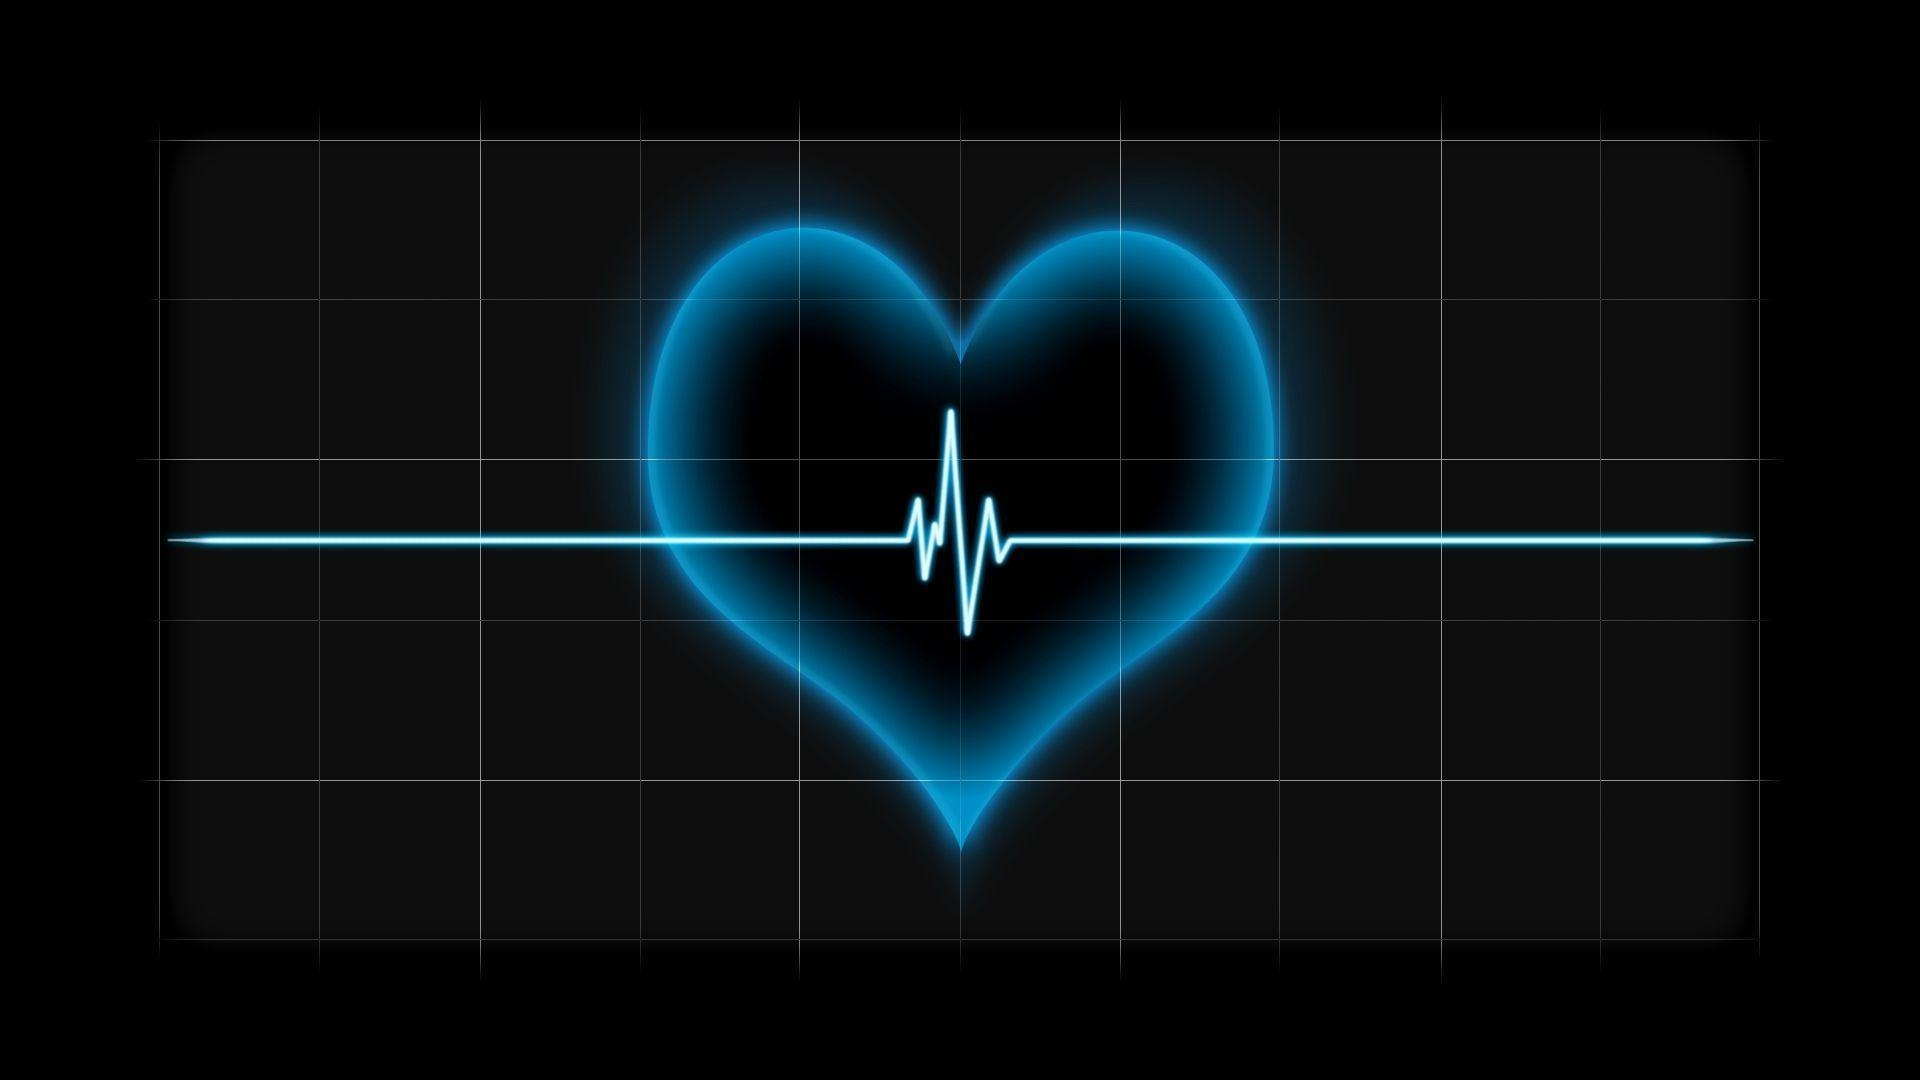 Heartbeat Desktop And Mobile Wallpaper Wallippo